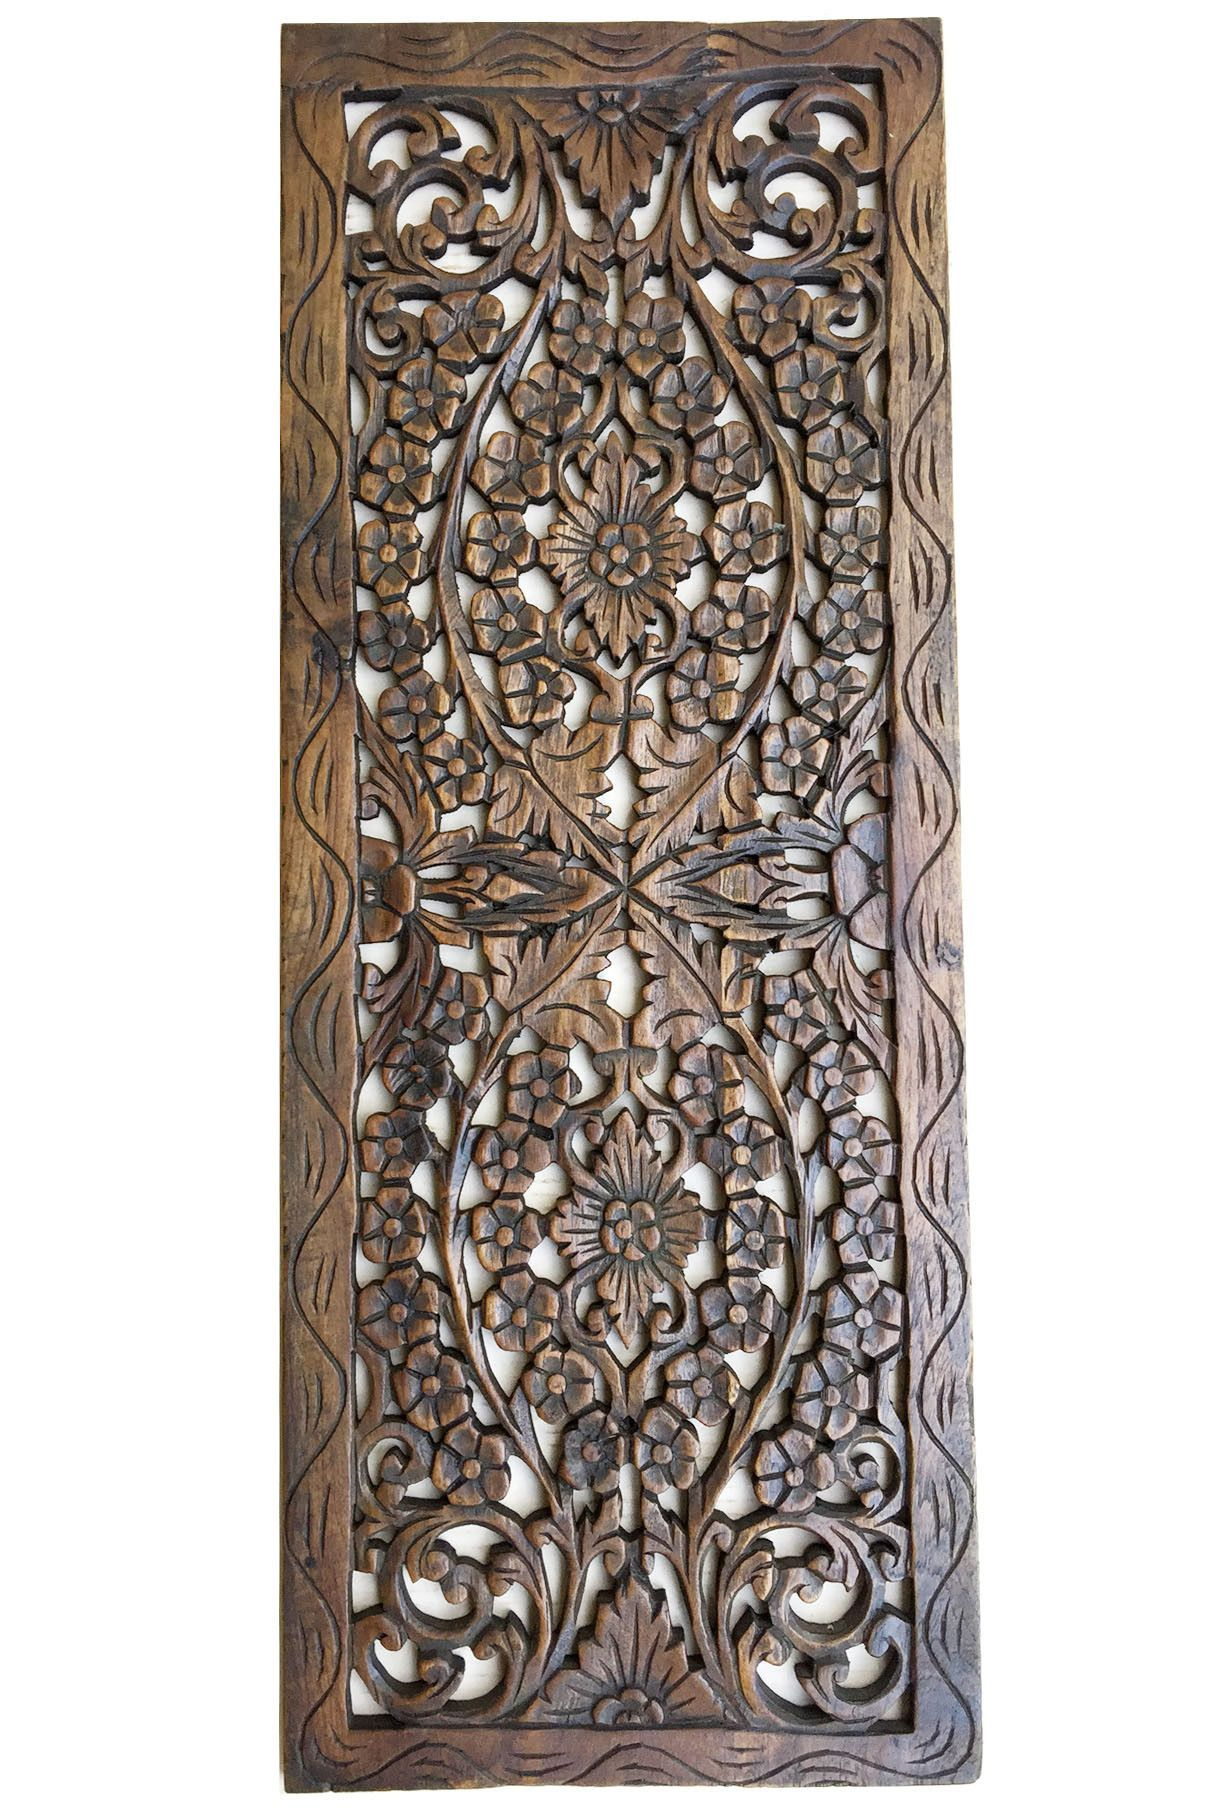 Decorative Wall Panels For Living Room: Floral Wood Carved Wall Panel. Wall Hanging. Asian Home